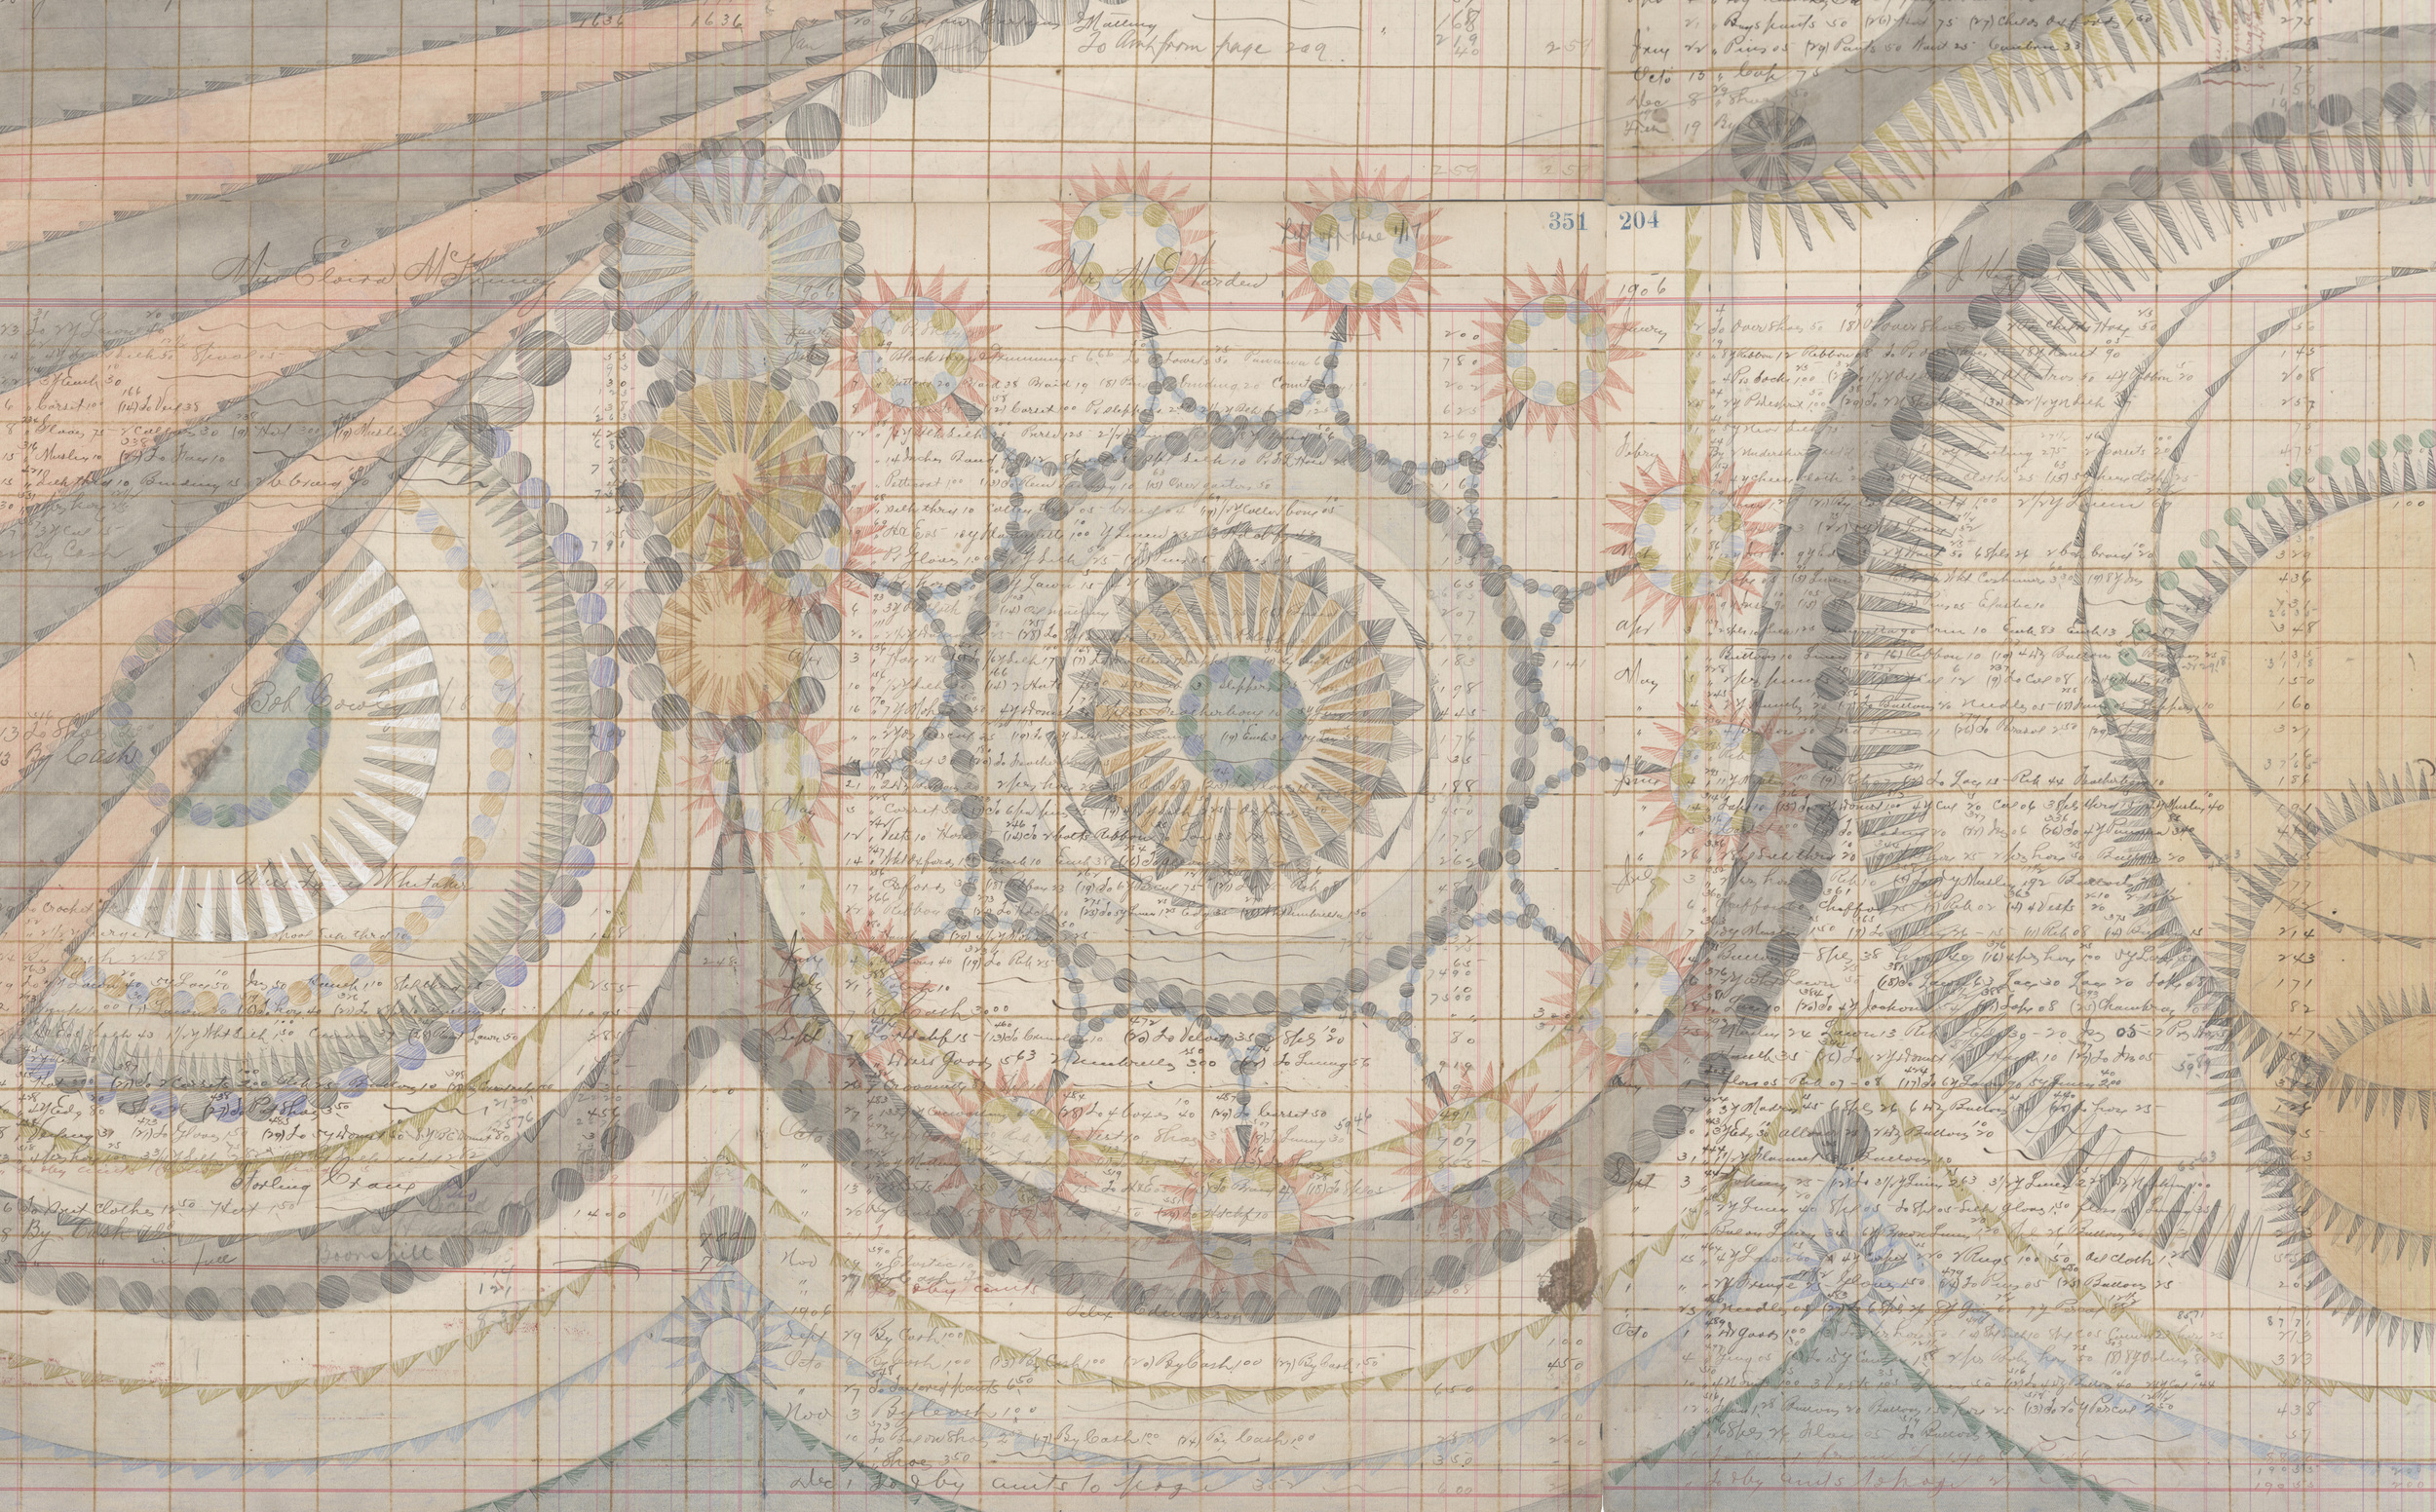 DETAIL of  Subtle and Circulatory, Female. Colored Pencil and Graphite on Antique Ledger Book Pages. 71 1/2 x 68 1/2